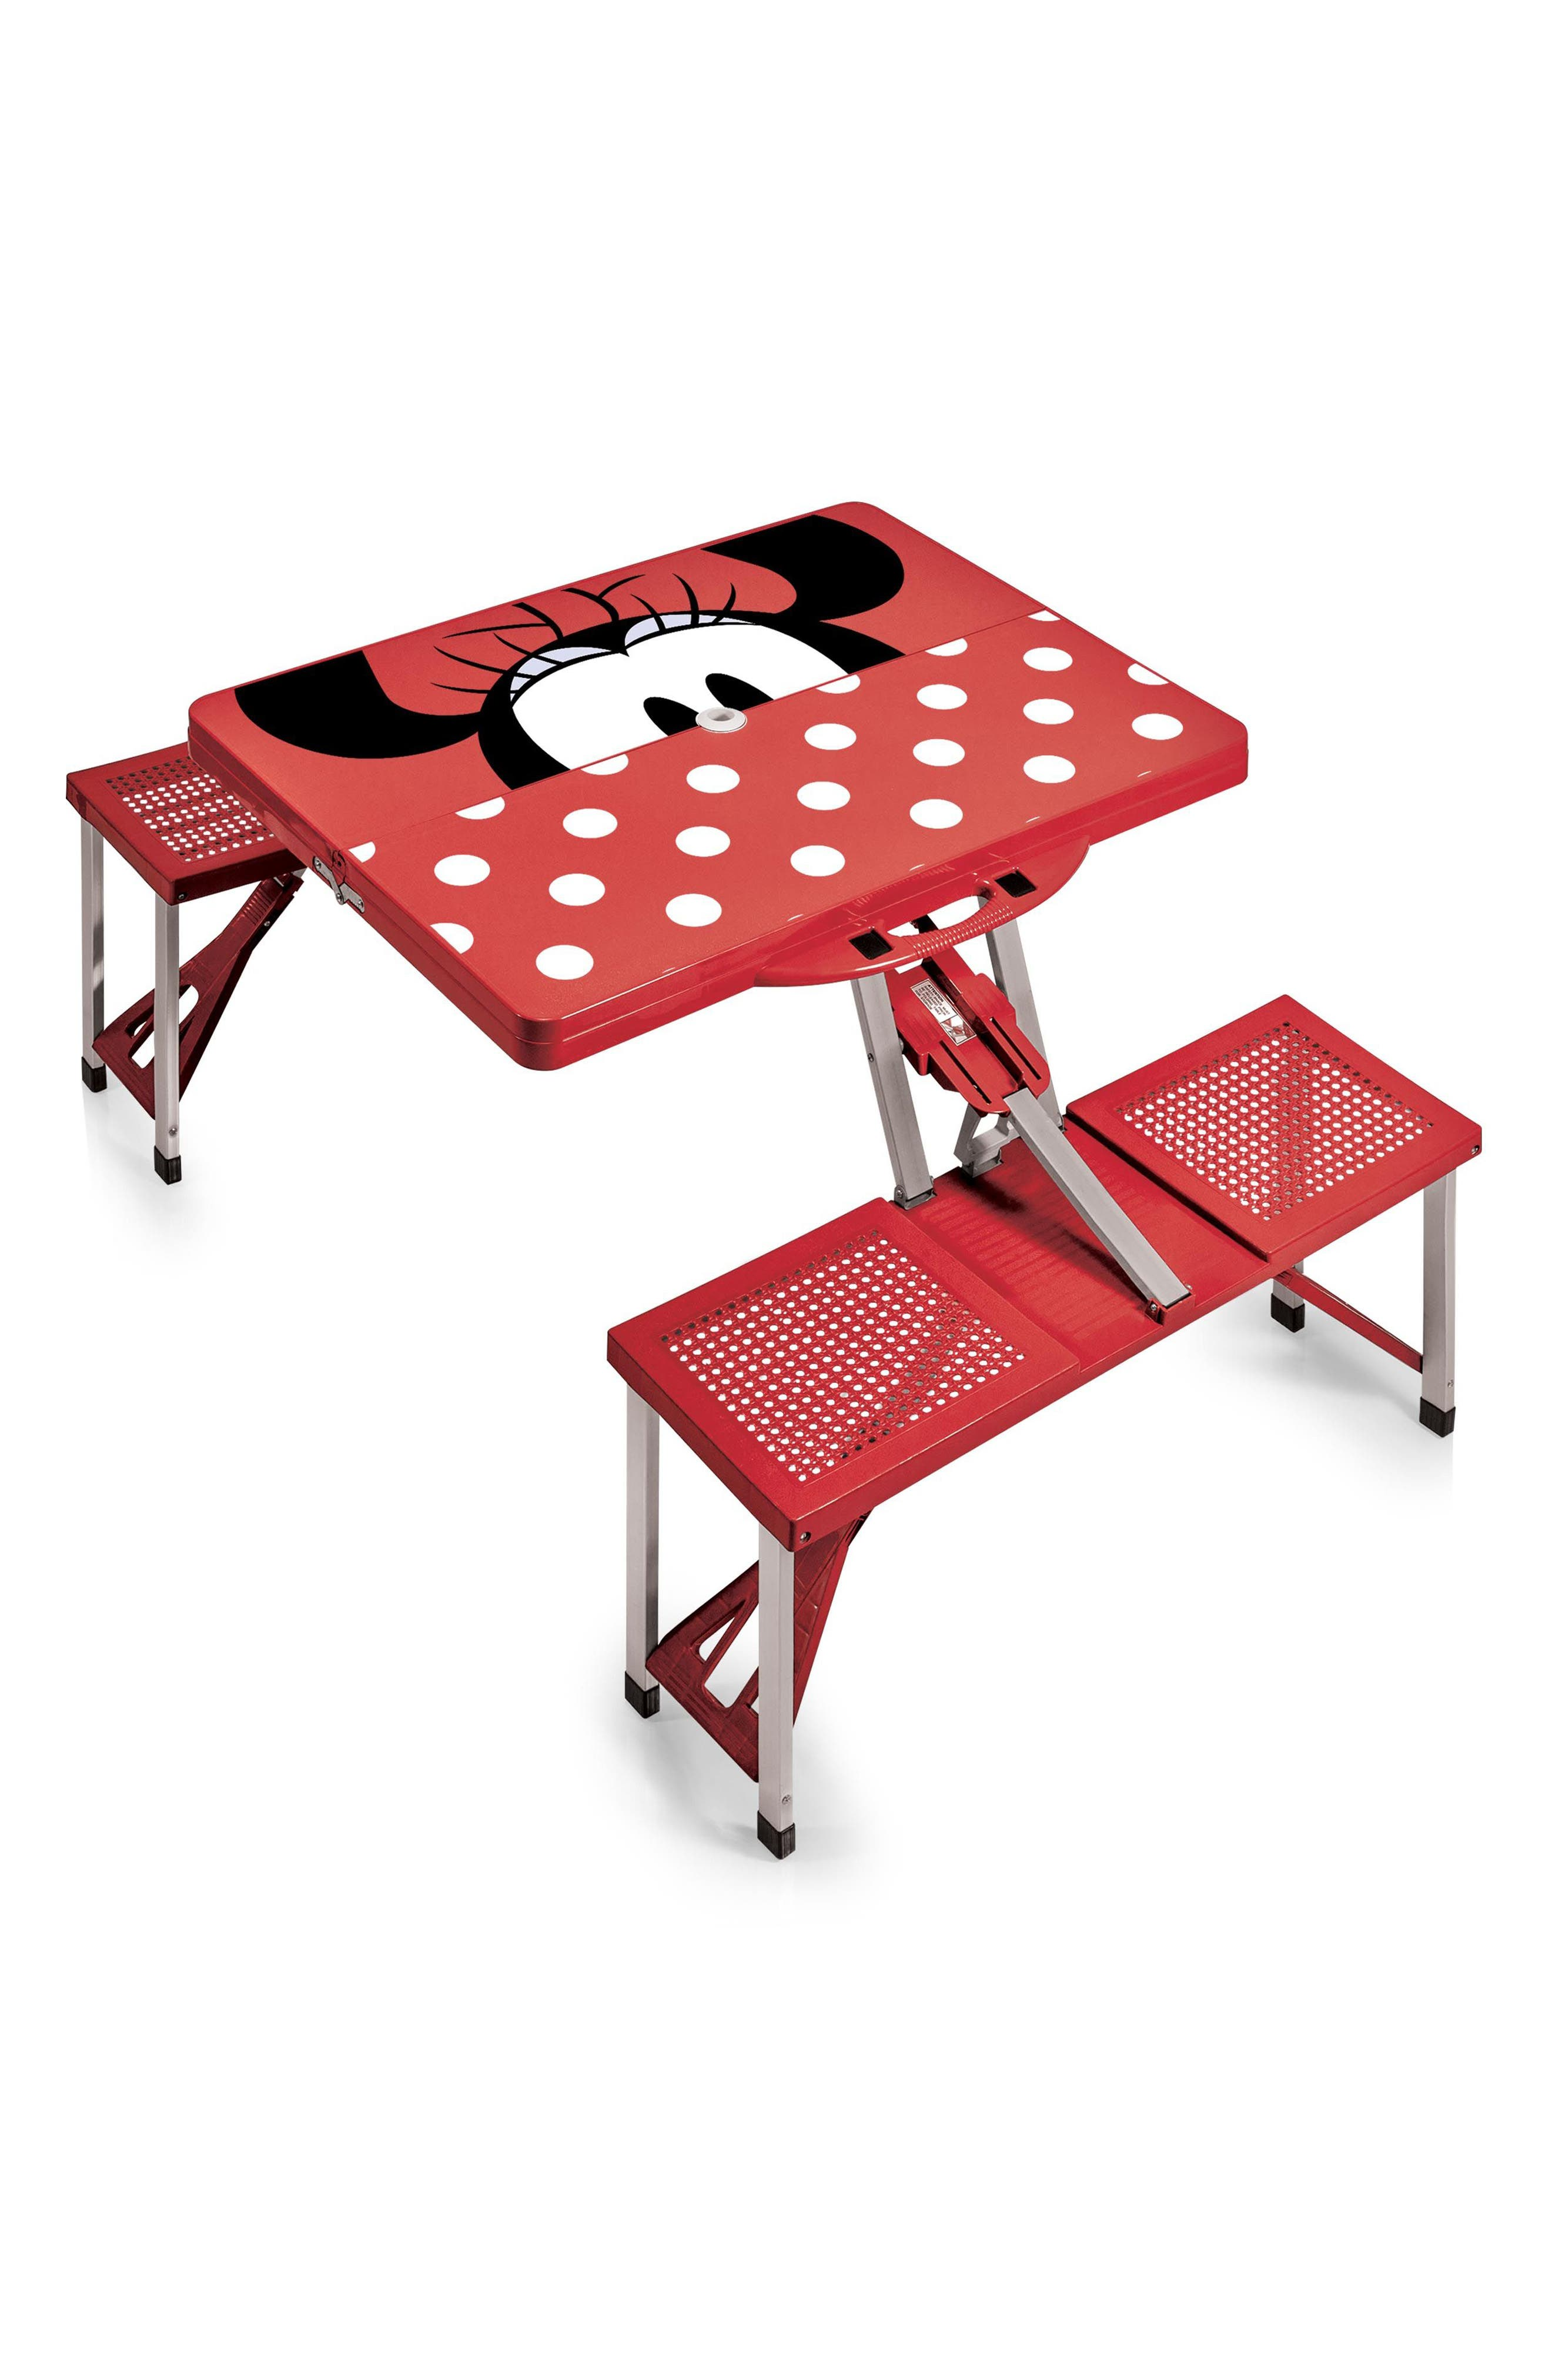 Disney<sup>®</sup> Mickey Mouse Portable Folding Table,                             Alternate thumbnail 4, color,                             Red